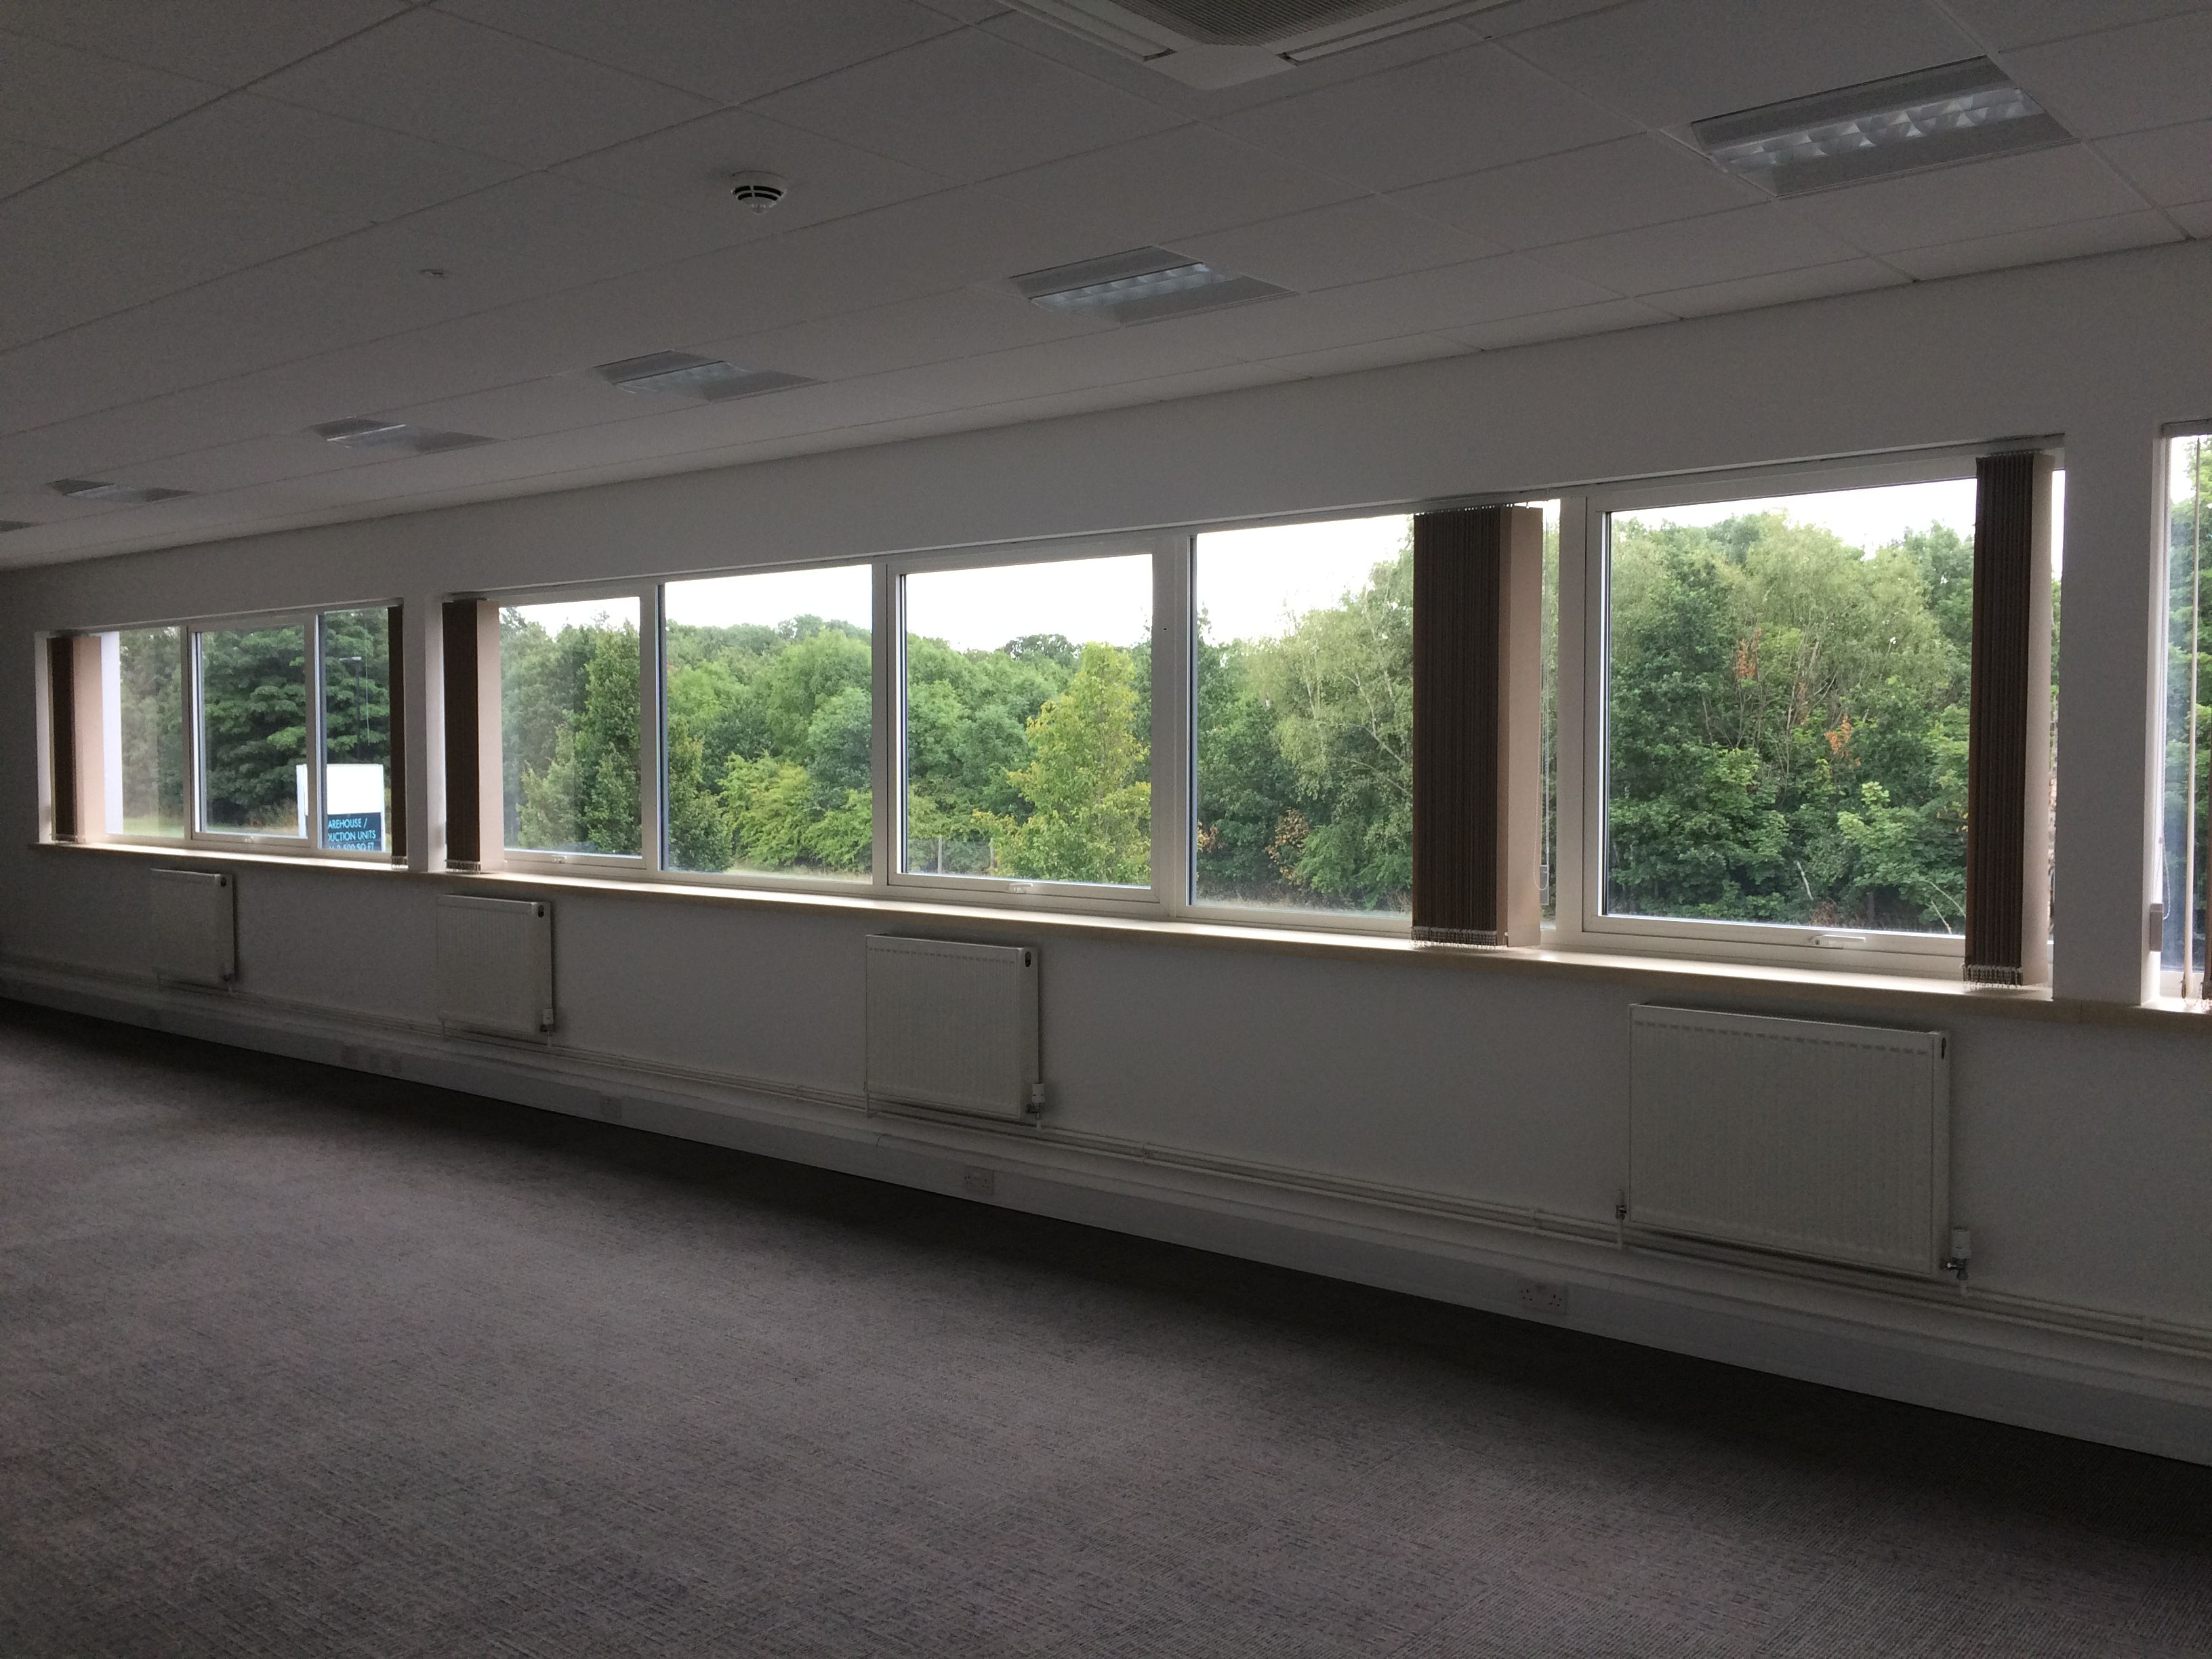 An installation of VLB vertical louvre blinds into warehouse offices.